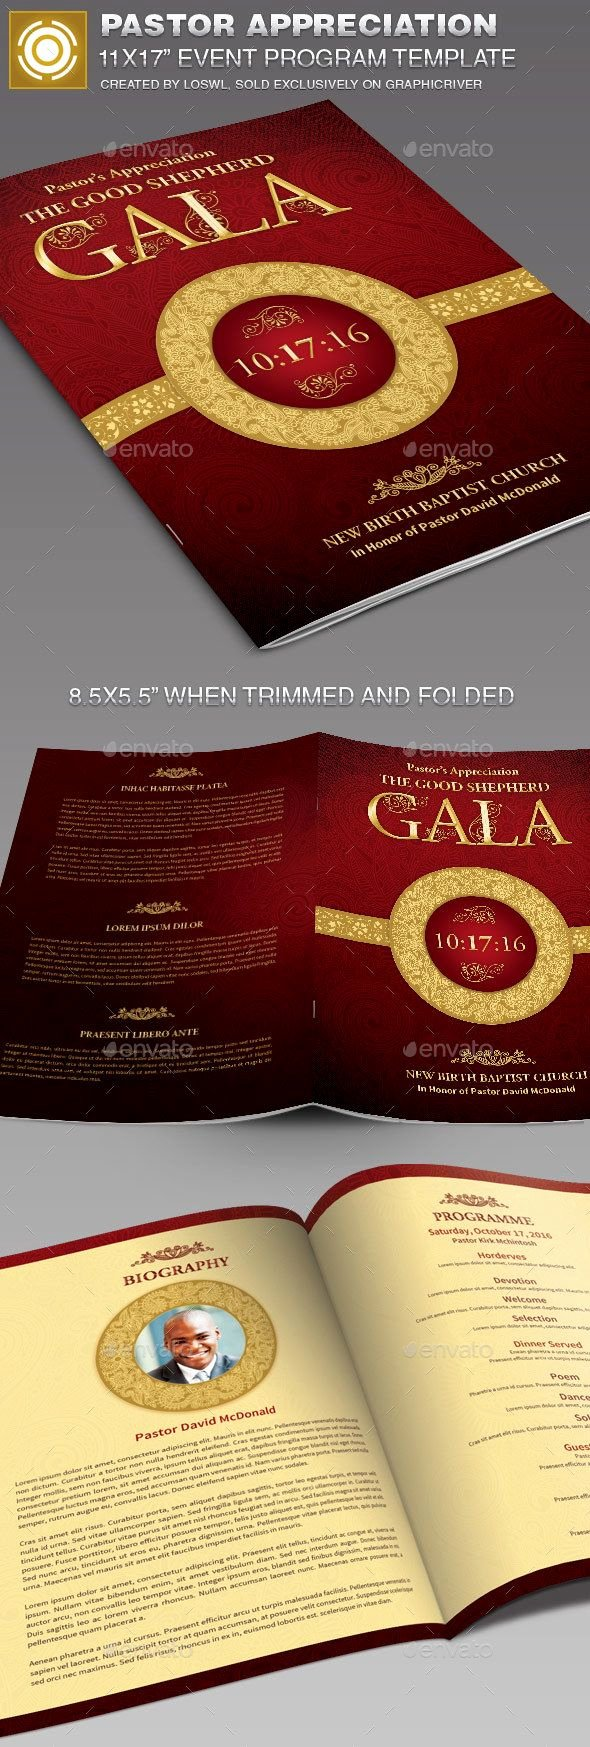 Free Pastor Anniversary Program Templates Luxury Pastor Appreciation event Program Template